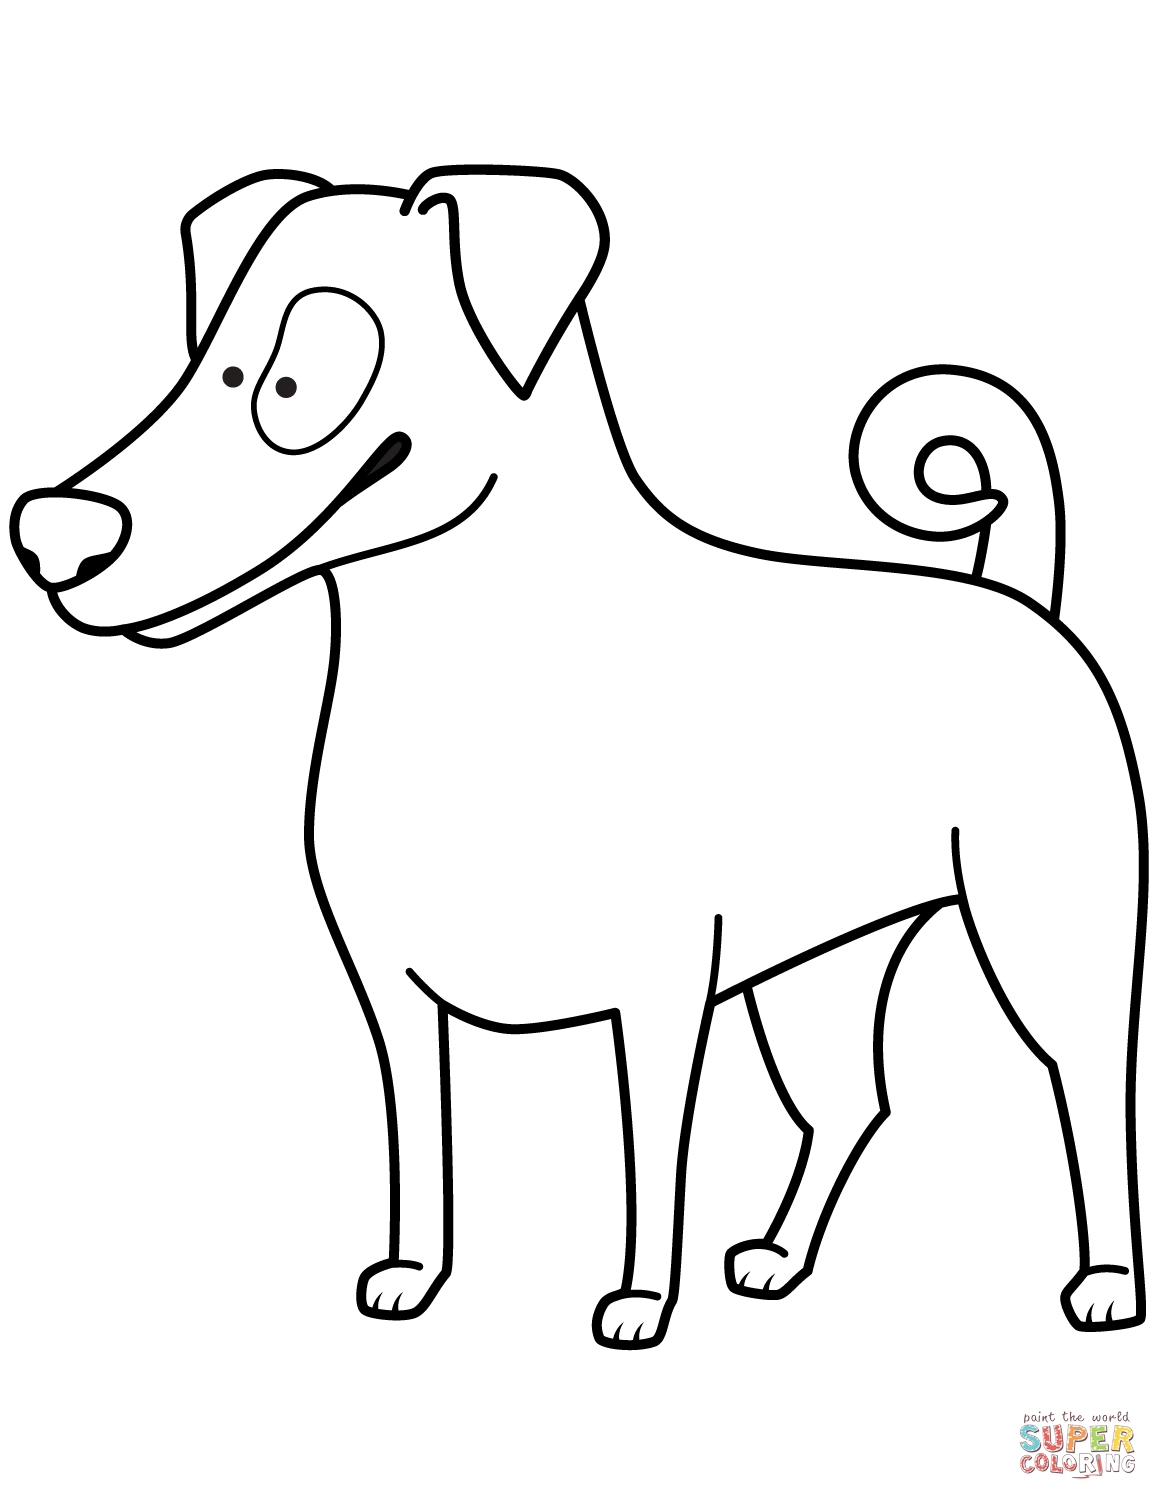 how to draw a jack russell terrier how to draw a jack russell terrier how a russell to draw jack terrier